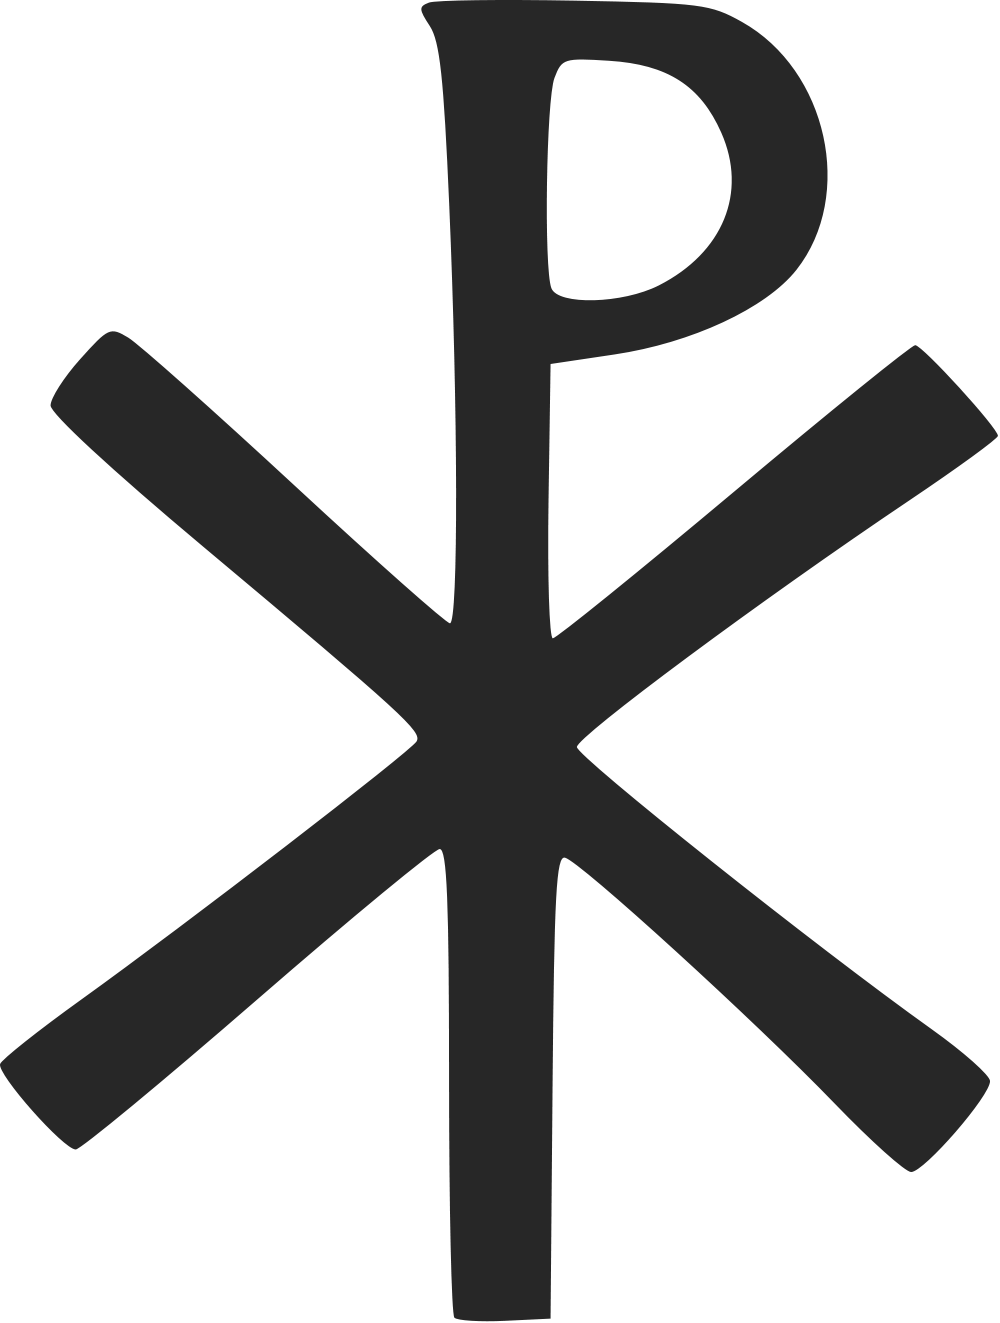 svg transparent Symbol protestant pencil in. Clipart cross black and white